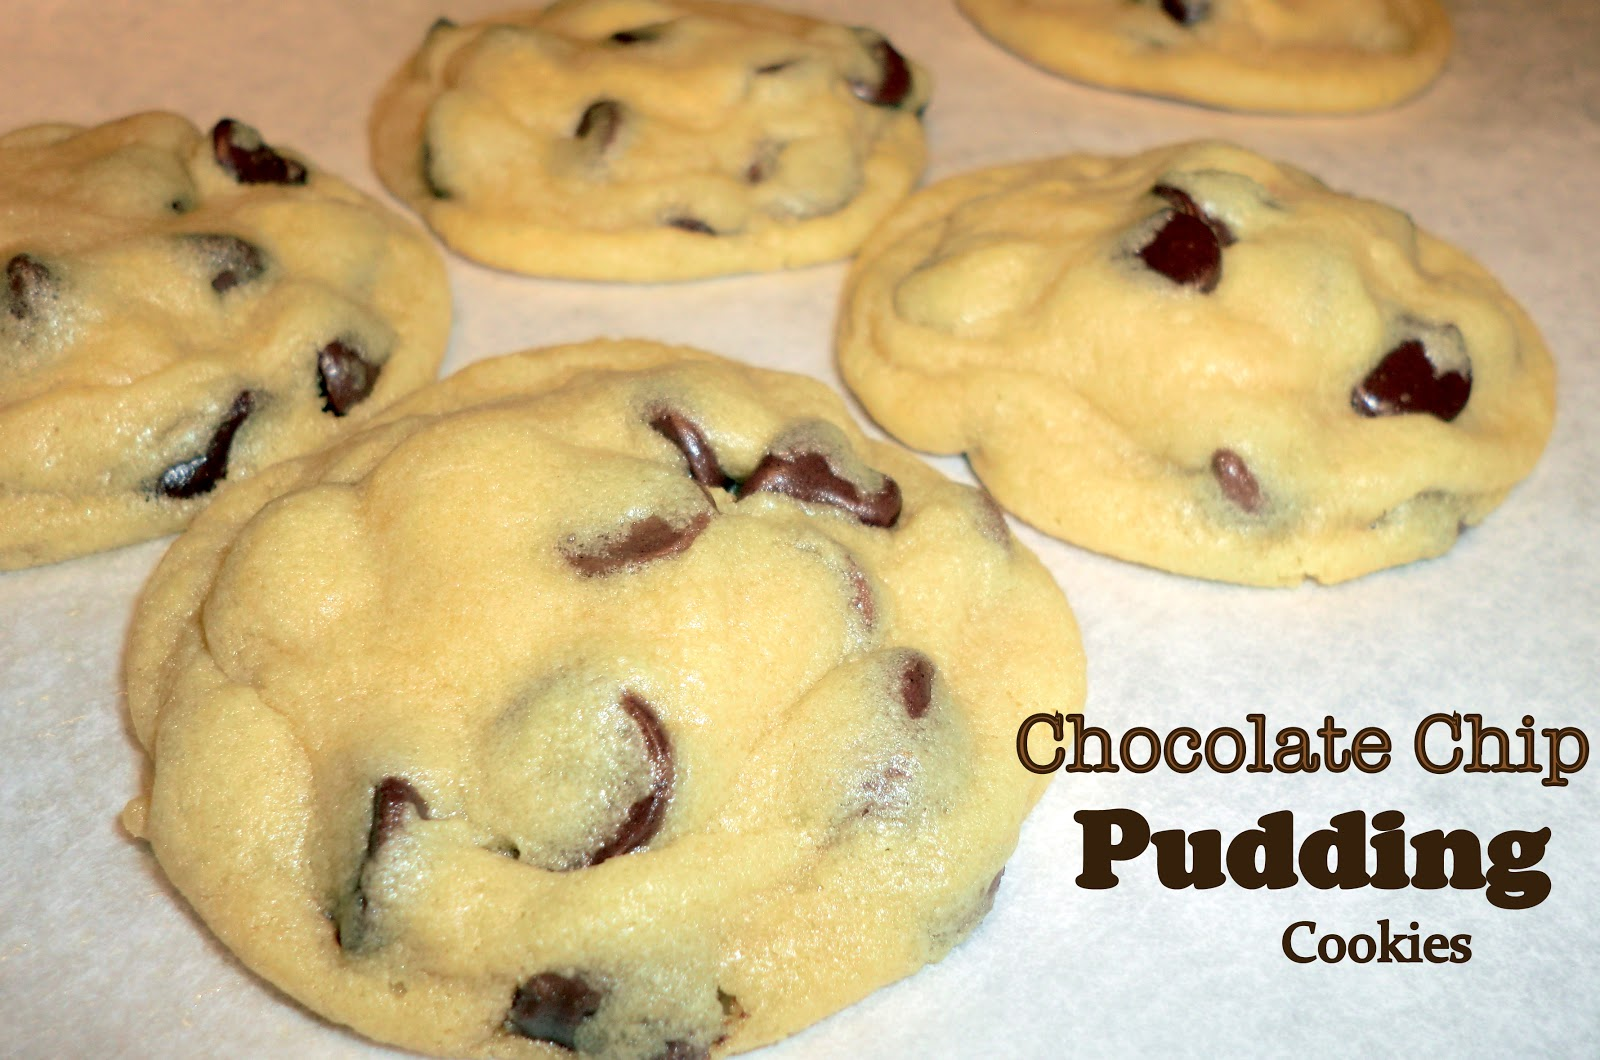 The Cookie Jar: Chocolate Chip Pudding Cookies